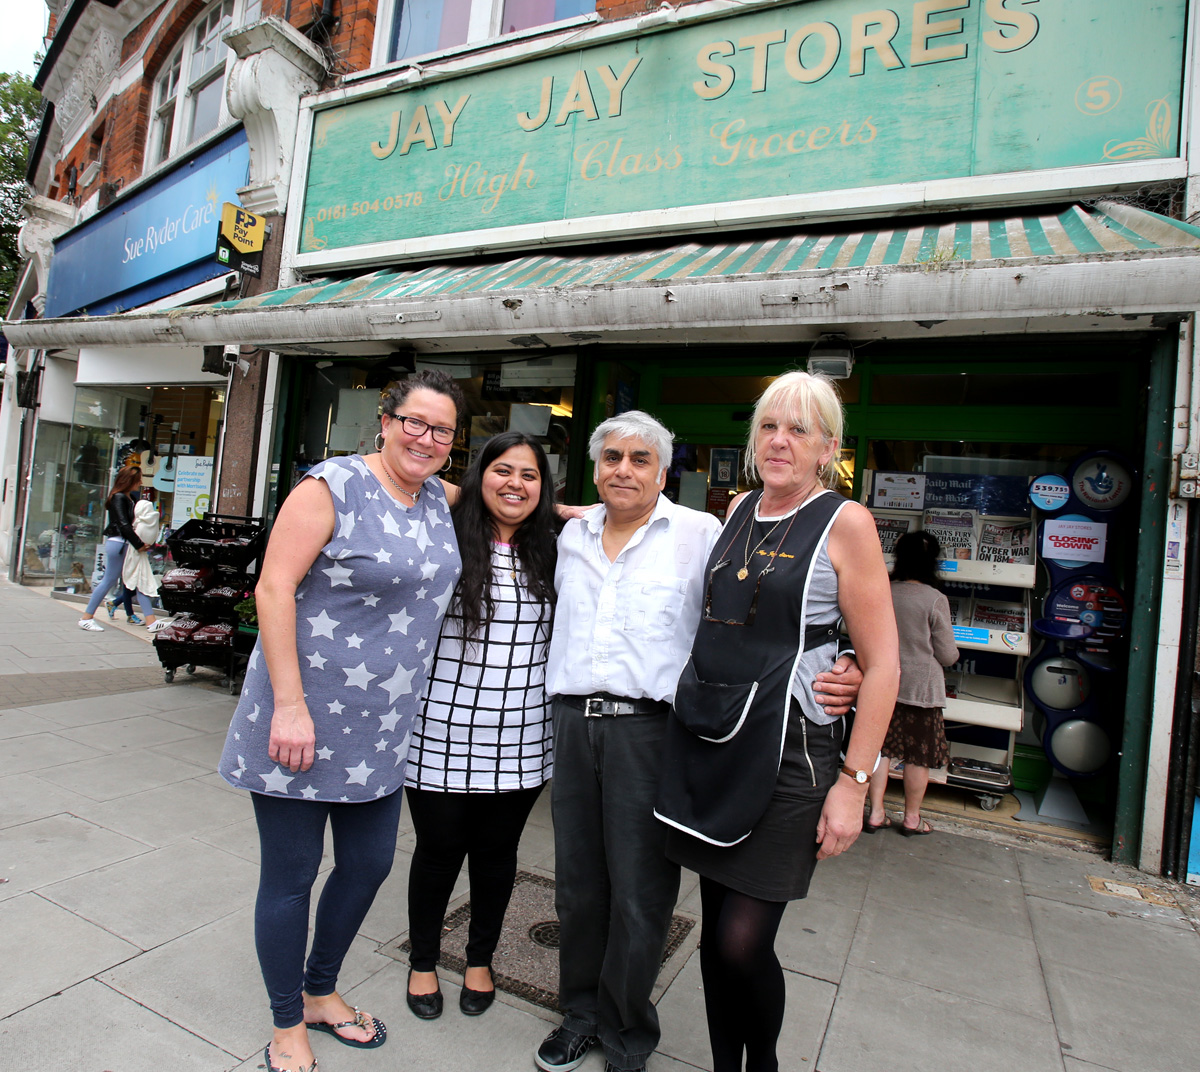 Staff Sally Powells, Gauri Bagne, Rajan Madlani and Natalie Savage outside Jay Jay Stores